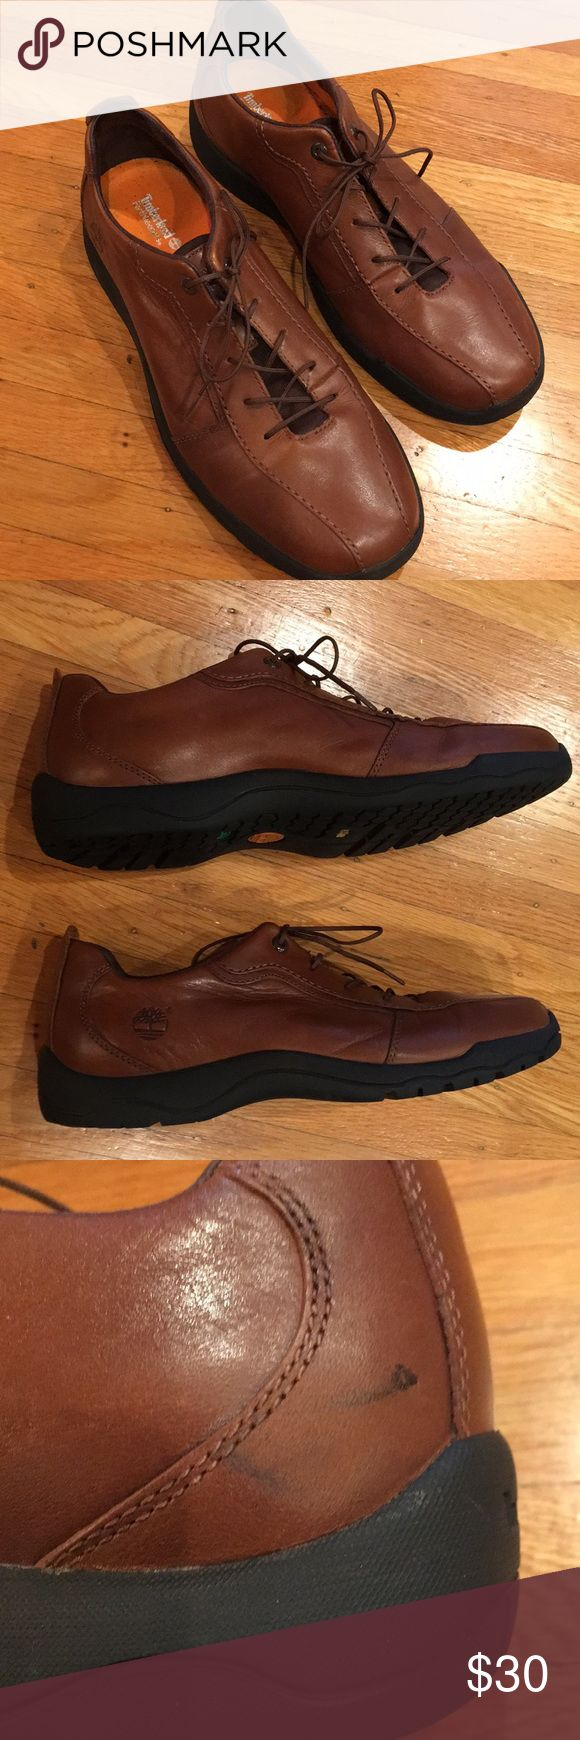 Timberland Earthkeepers Shoes Like new! Small scuff on one shoe (see picture), these shoes have hardly been worn. Men size 9.5 Timberland Shoes